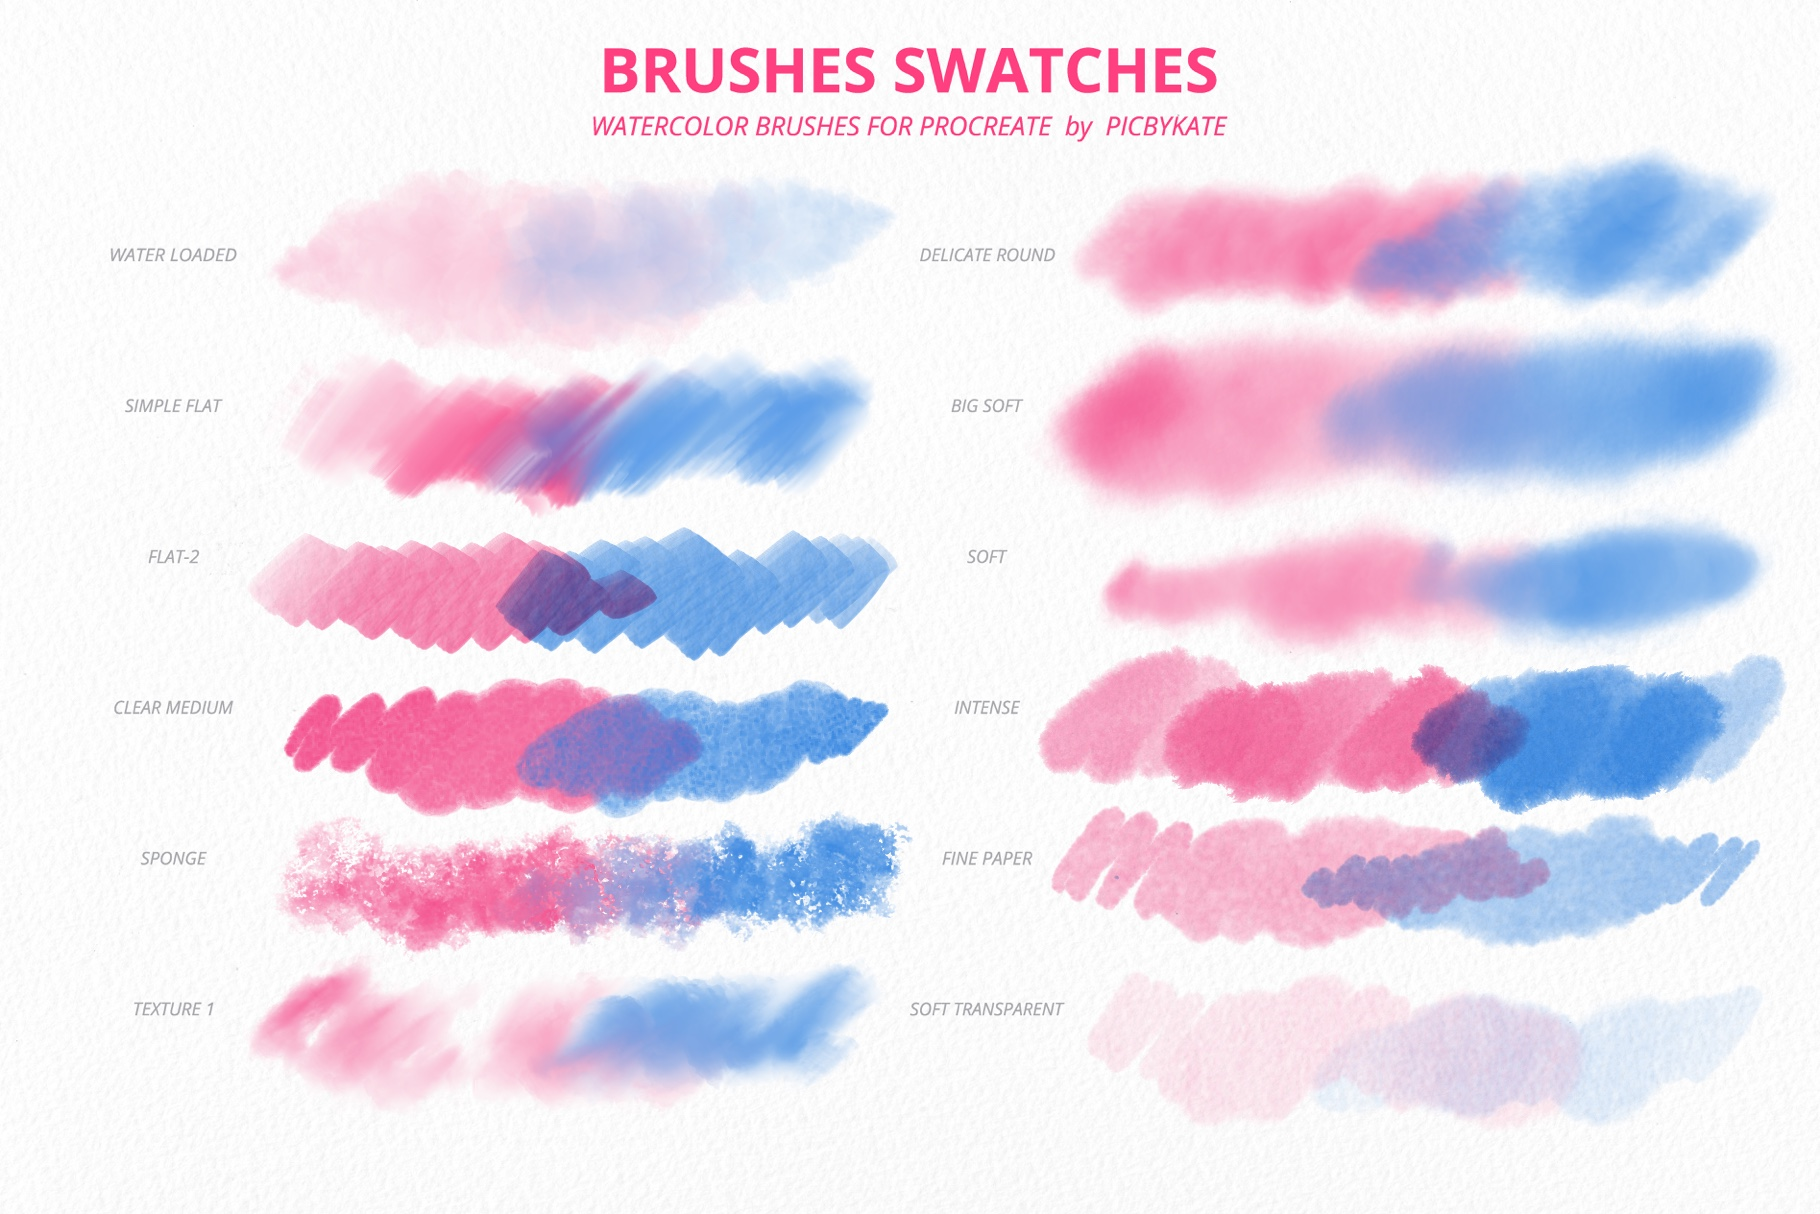 50 procreate watercolor brushes